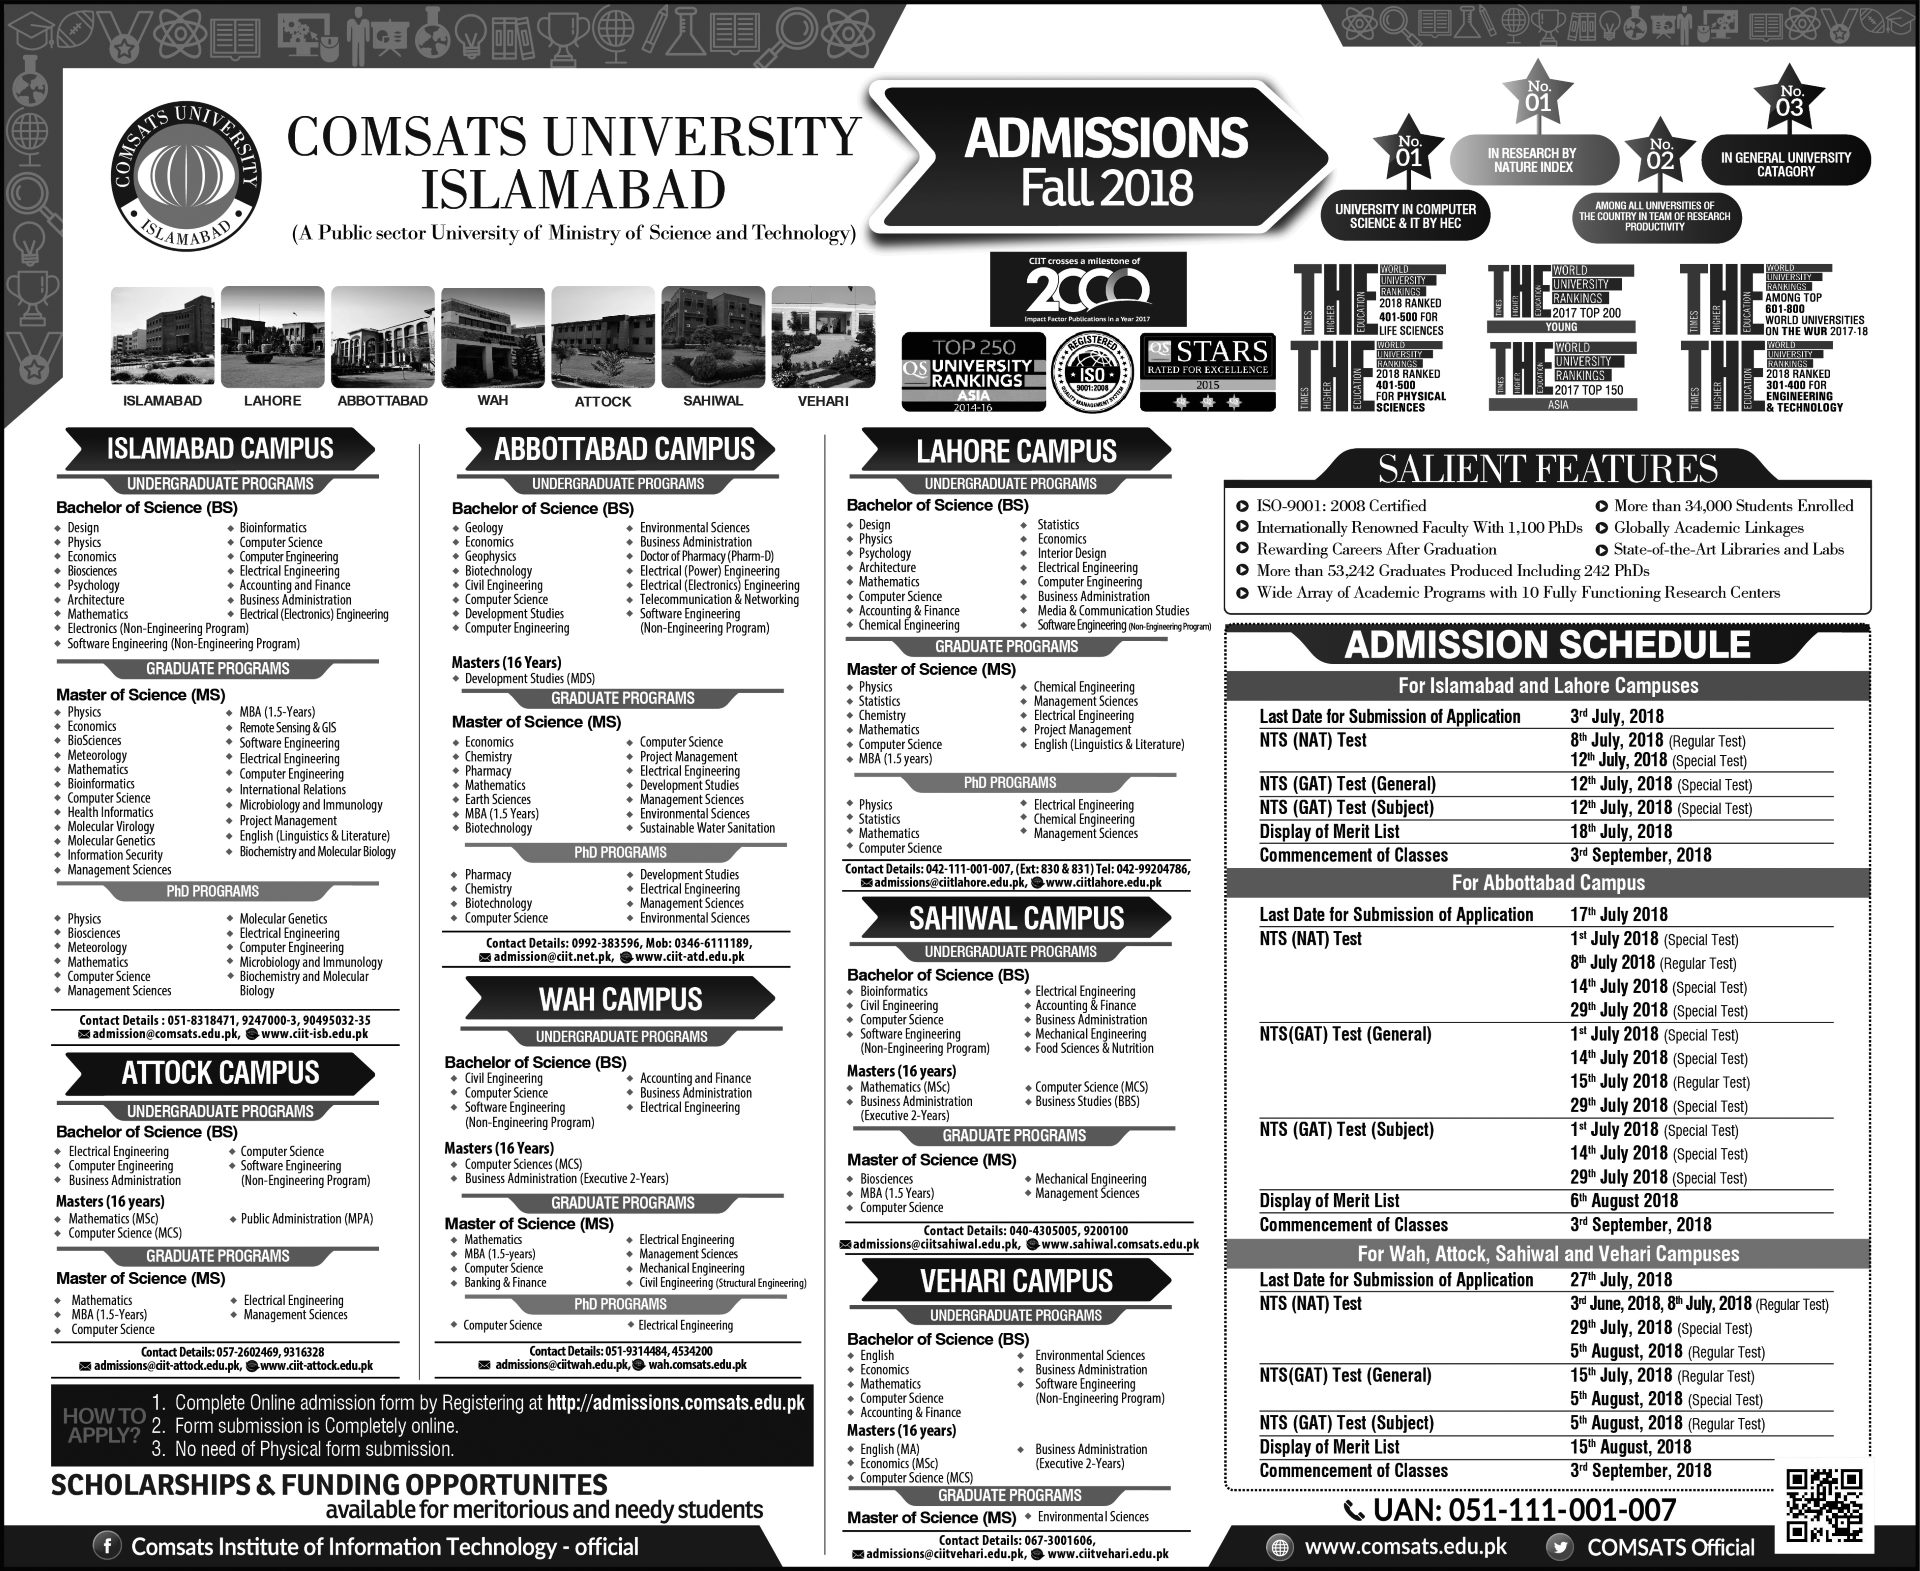 COMSATS University, Islamabad - Admissions Fall 2018 - STEP